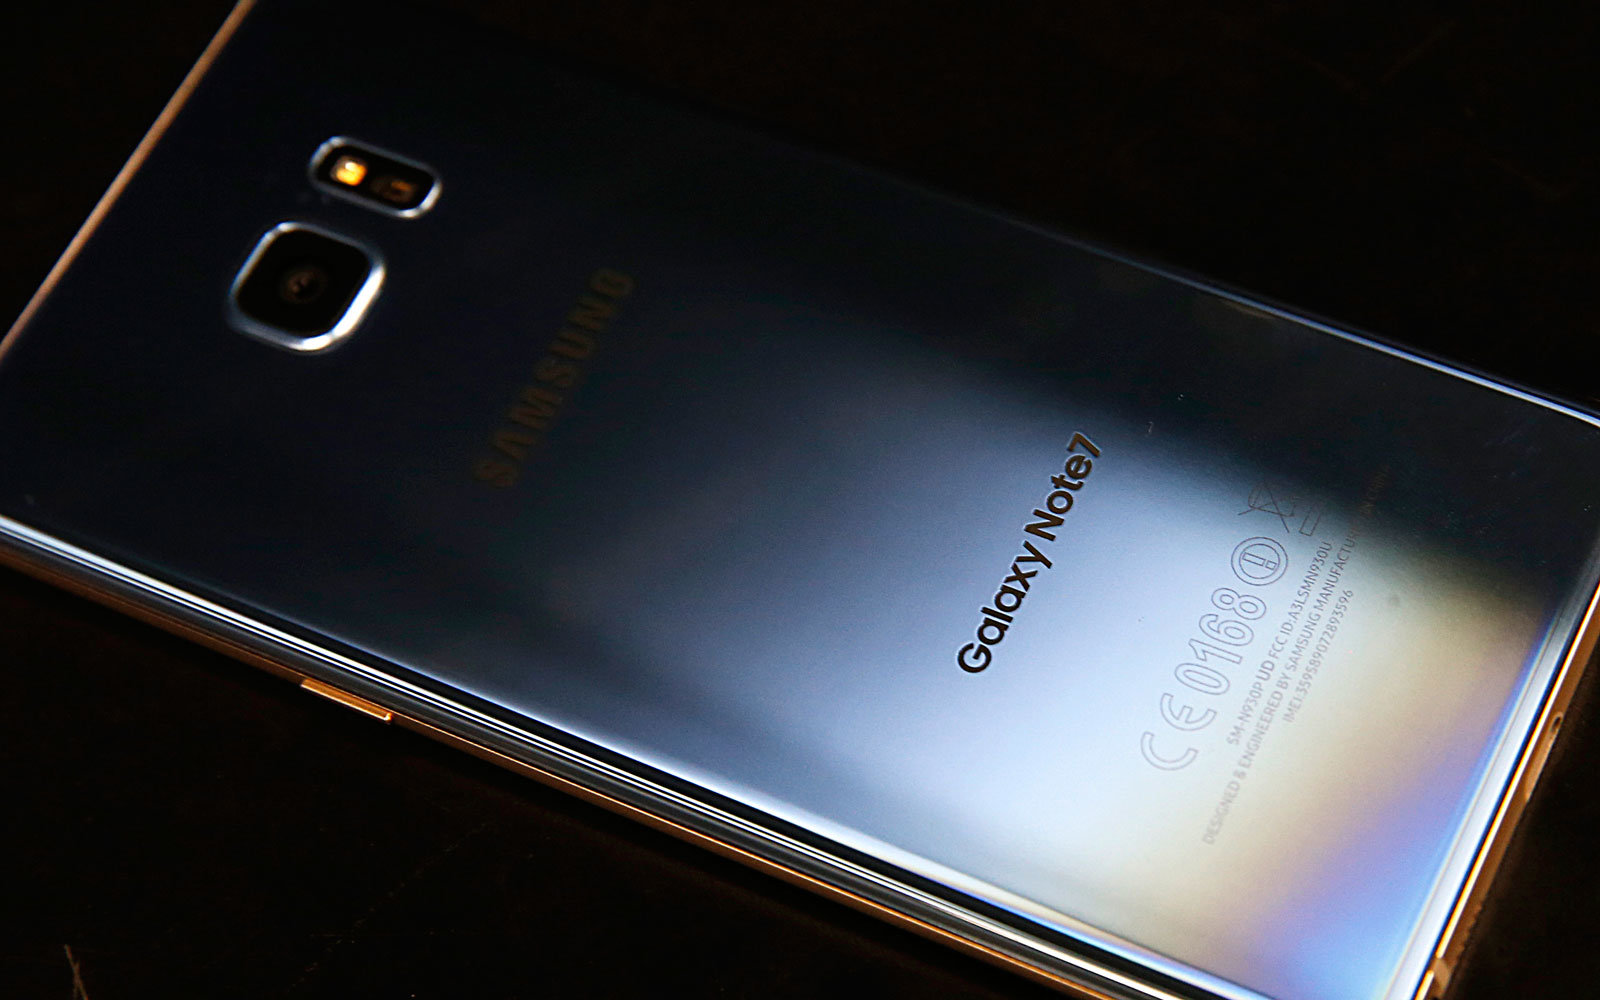 Samsung Galaxy Note 7 exchange stations